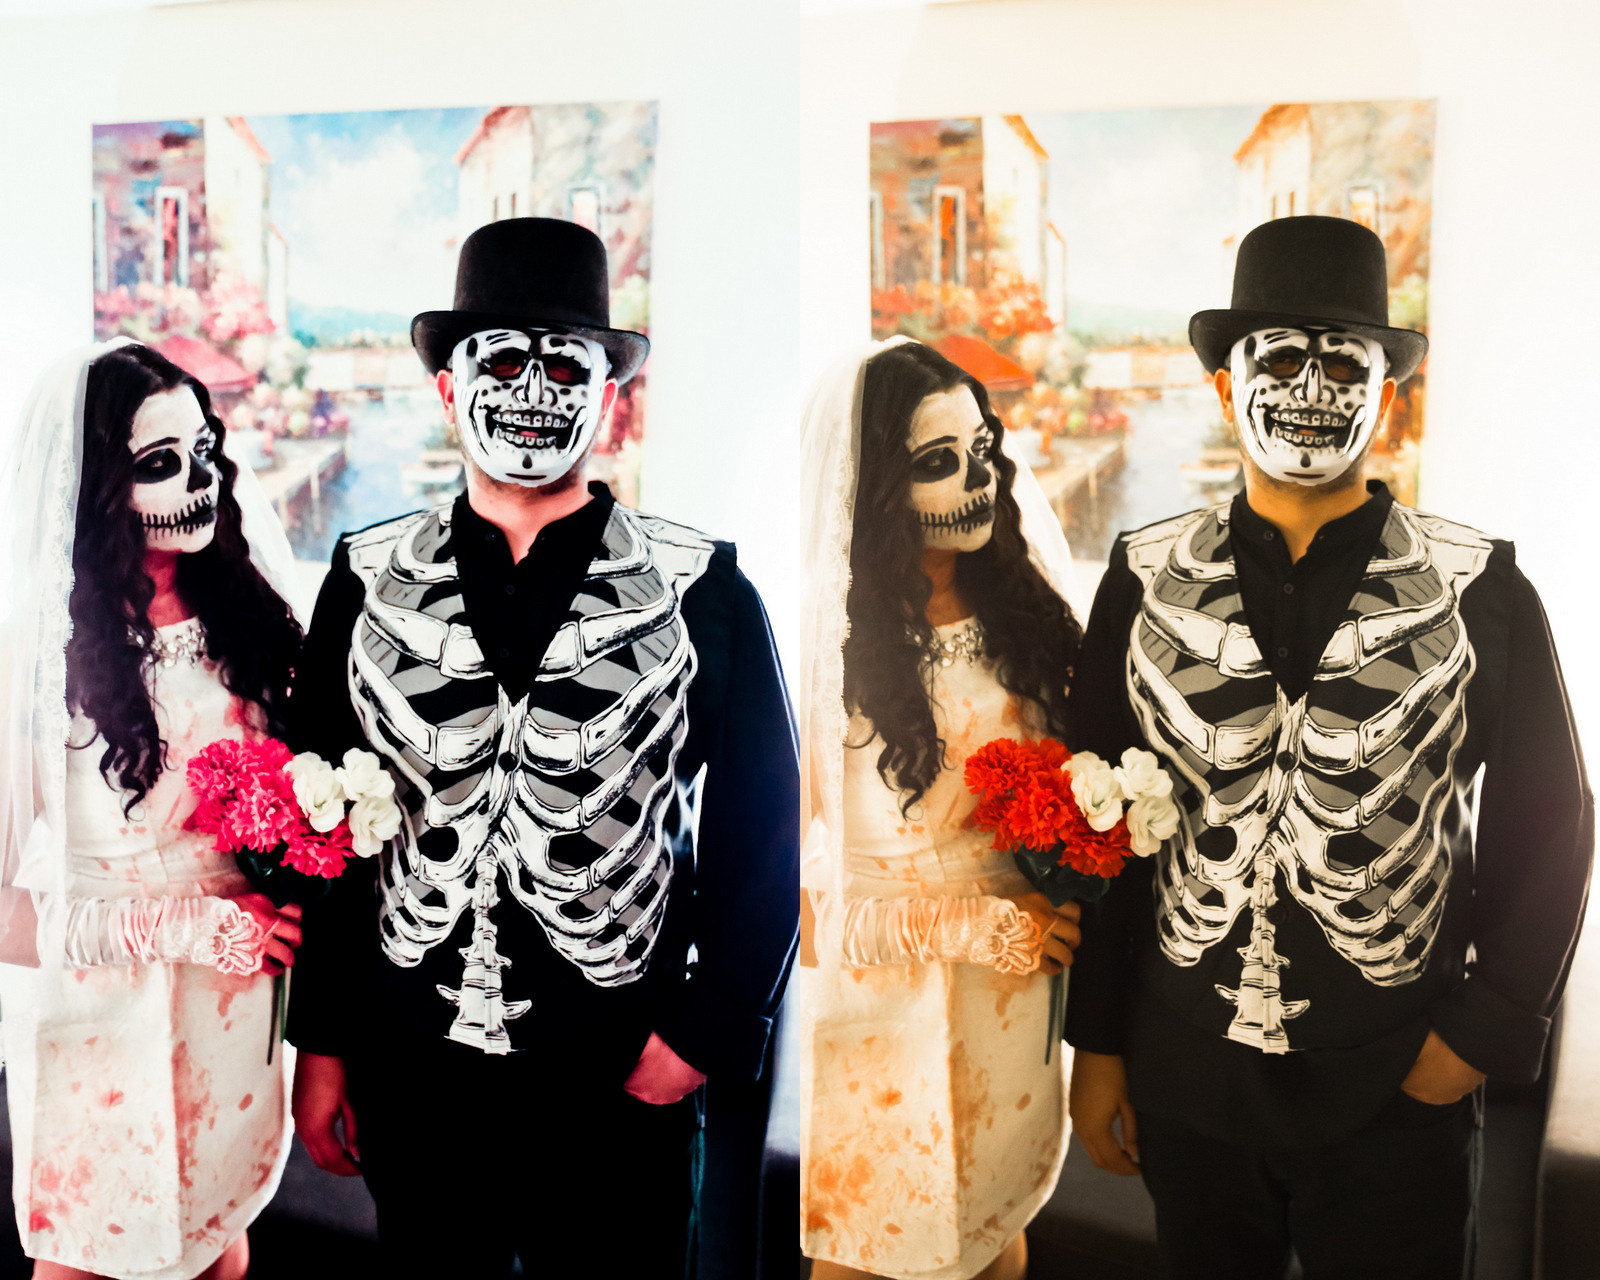 halloween2016, halloweenparties, sugarskull, boo, halloweenmakeup, halloweendressup, halloween ideas, halloweensf, rubyskyclub